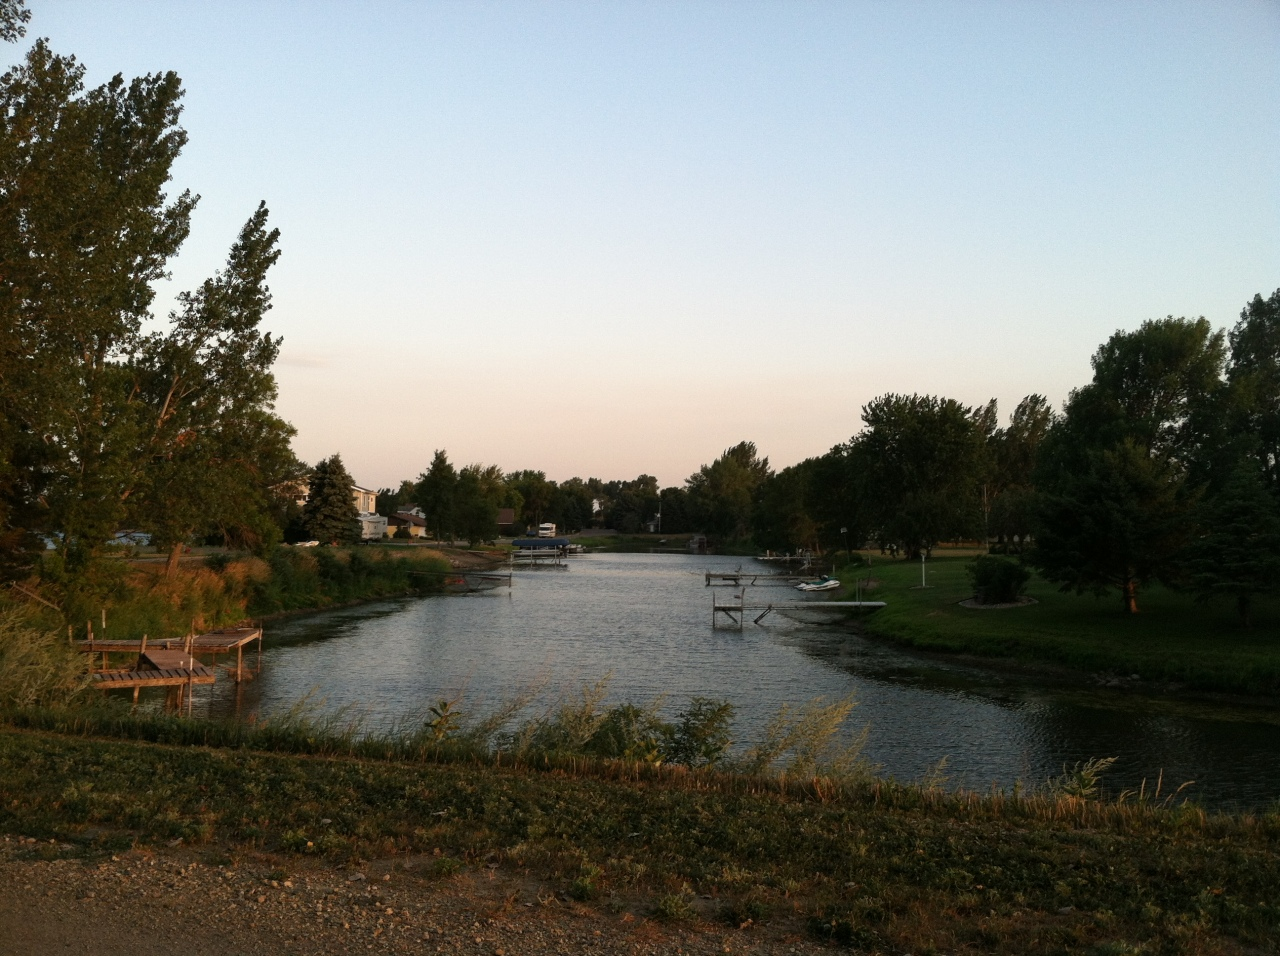 Marina Bay Dr, Watertown, SD 57201